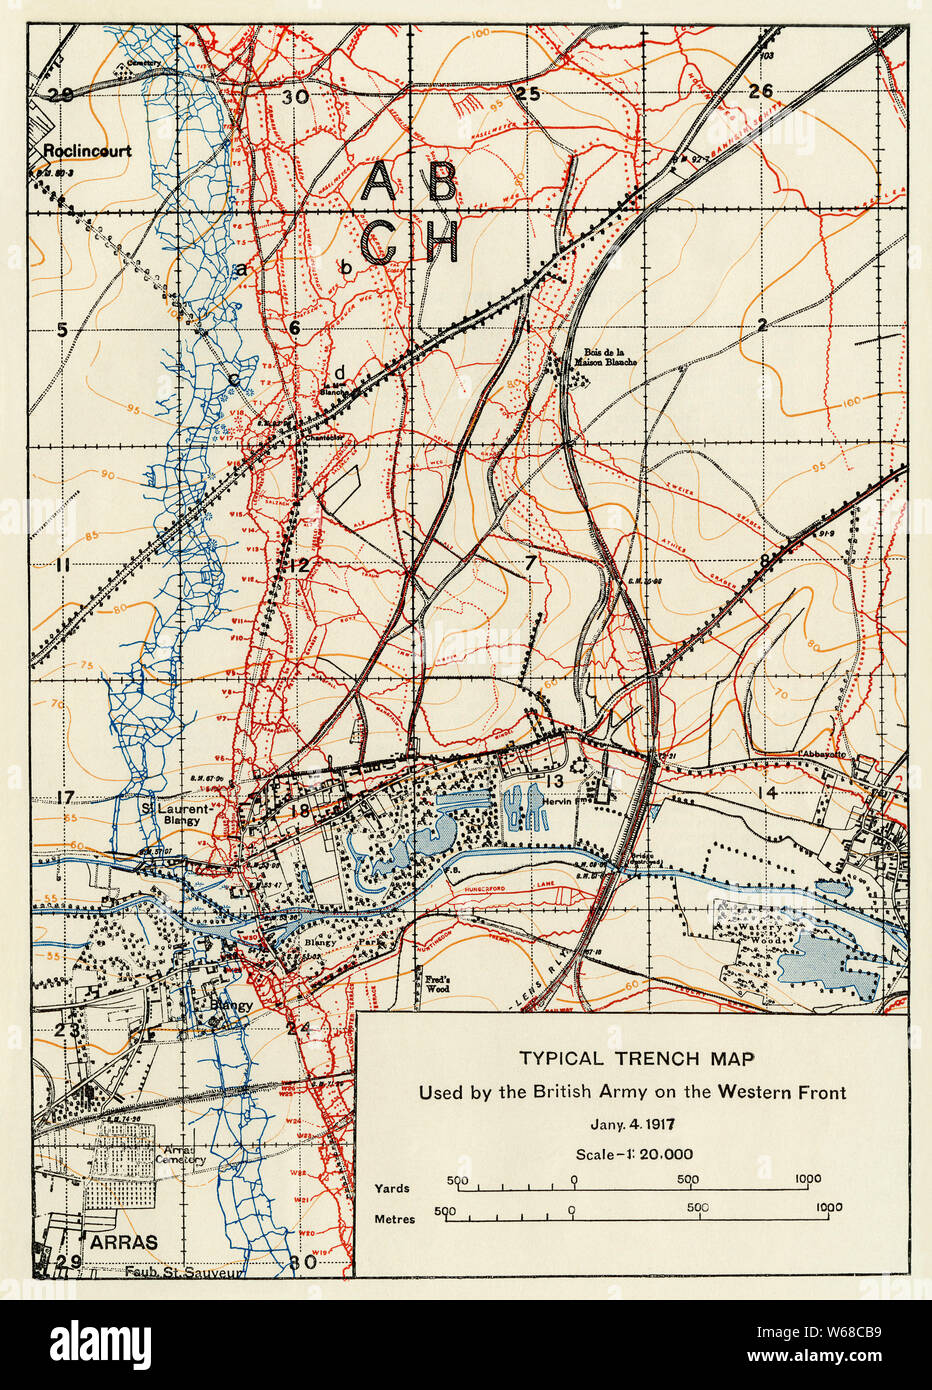 Trench Map : trench, Trench, Resolution, Stock, Photography, Images, Alamy